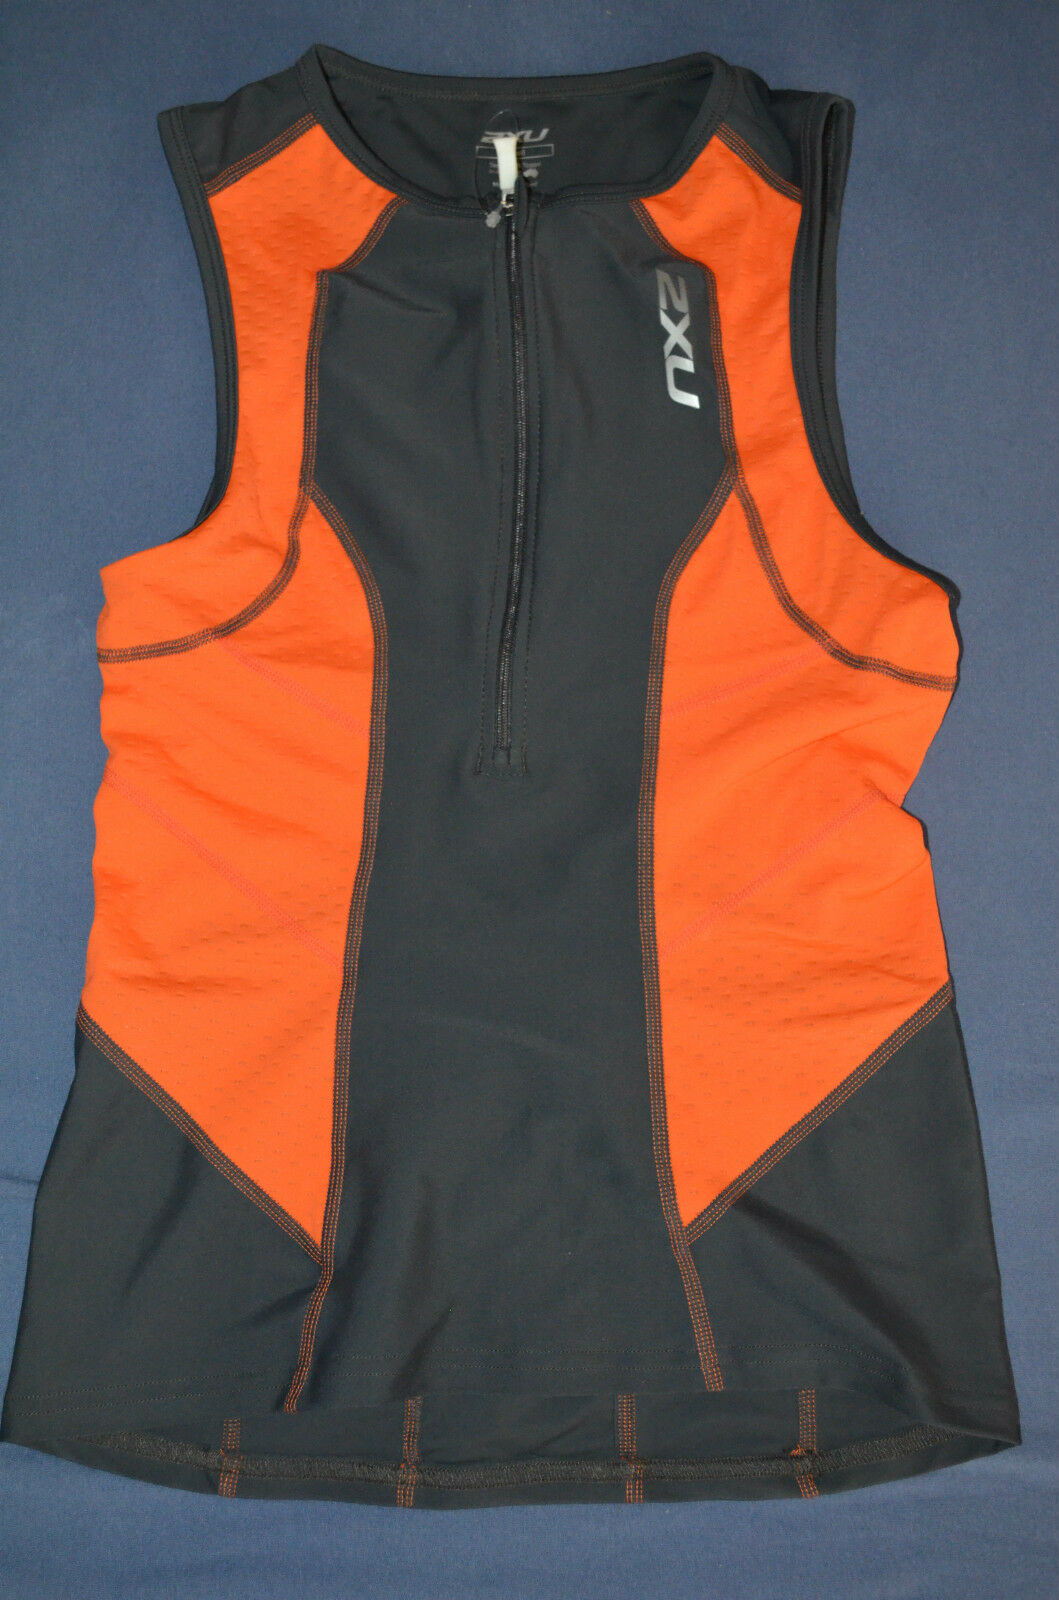 2XU Perform Triathlon Oberteil Herren Orange grau Gr.S